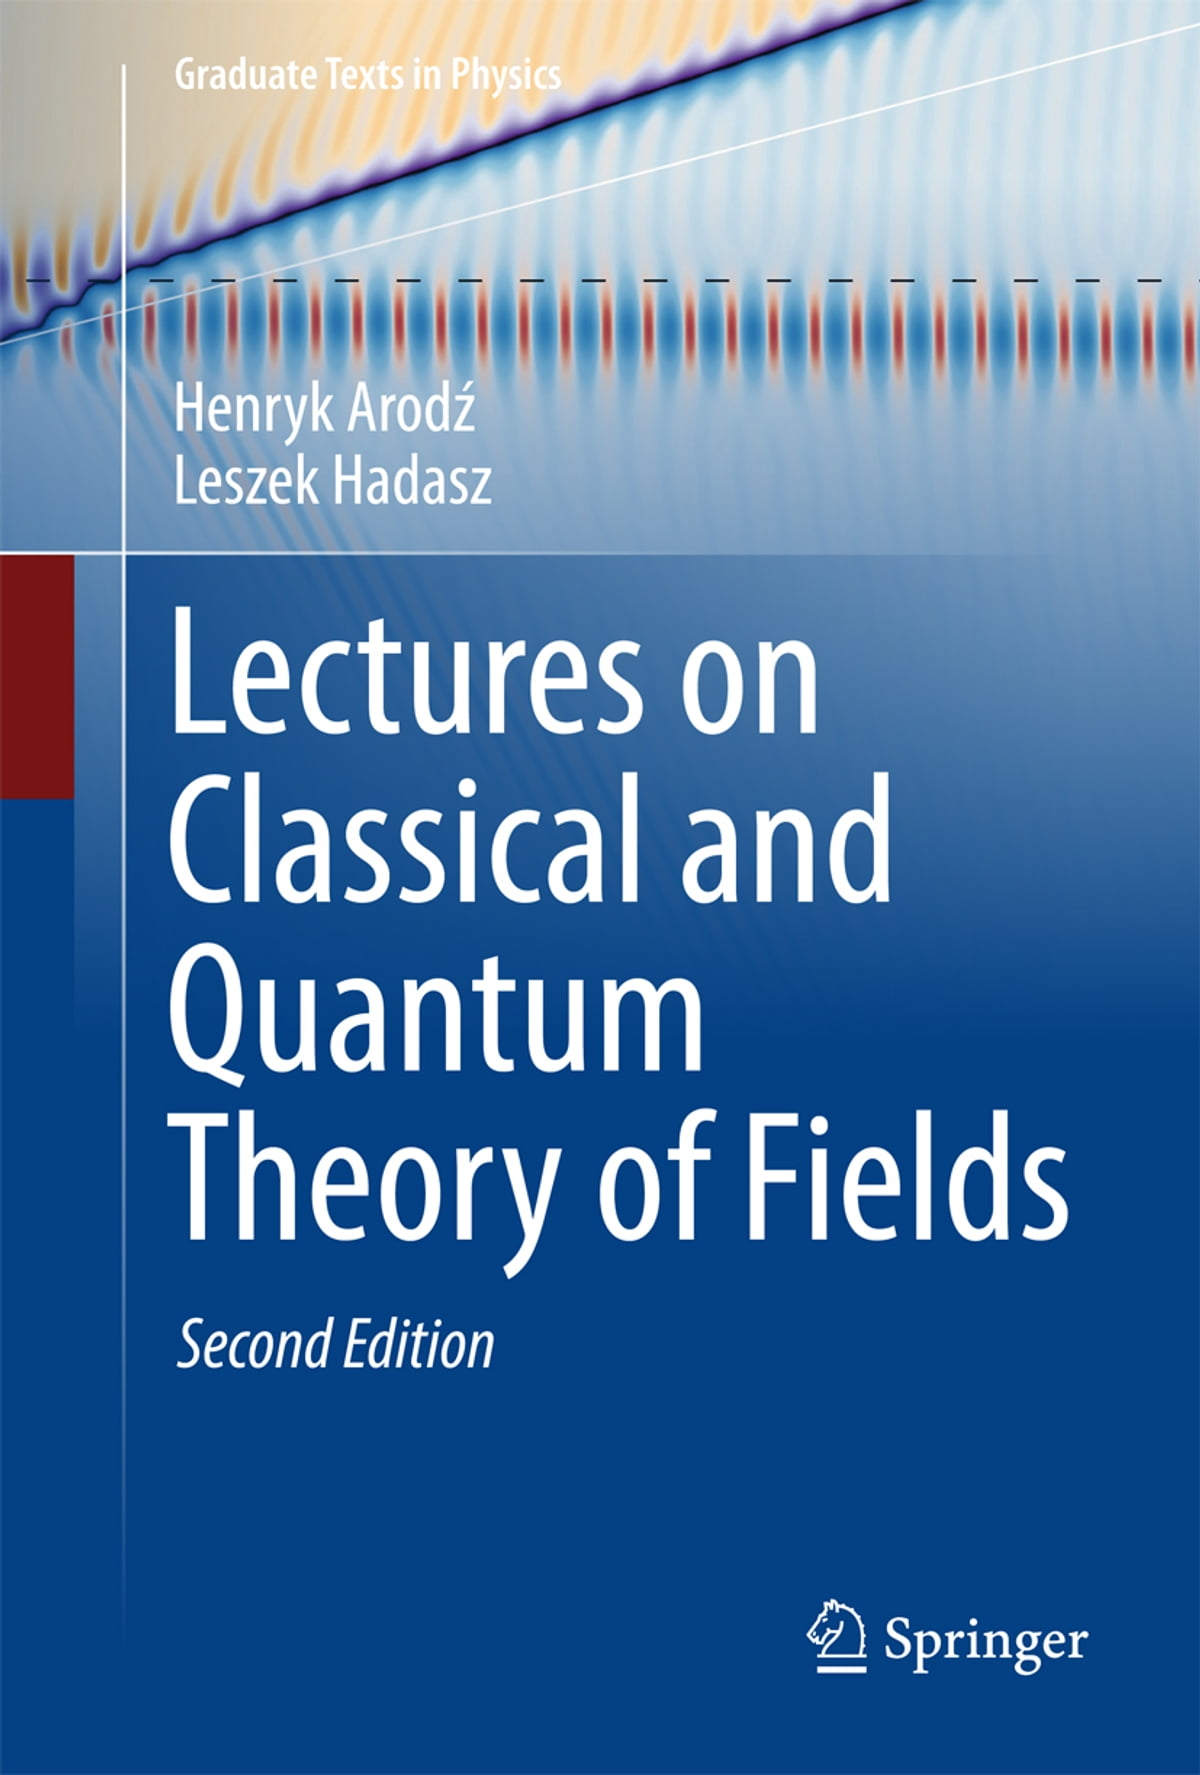 Lectures on classical and quantum theory of fields ebook di henryk lectures on classical and quantum theory of fields ebook di henryk arodz 9783319556192 rakuten kobo fandeluxe Image collections